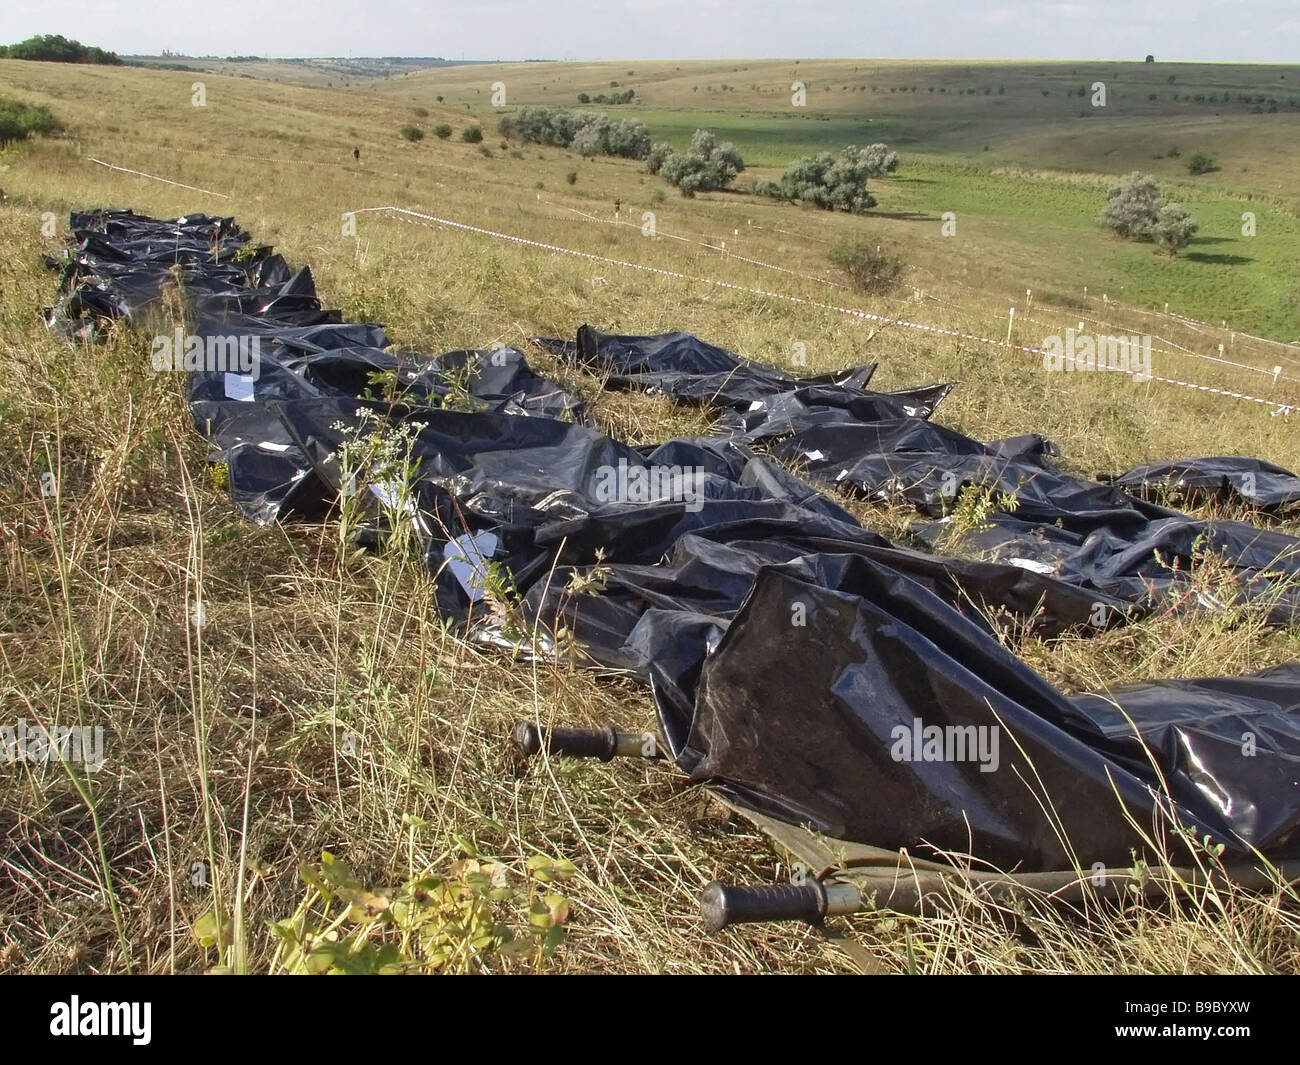 At the site of the TU 154 Pulkovo Airlines air crash near Donetsk in eastern Ukraine - Stock Image